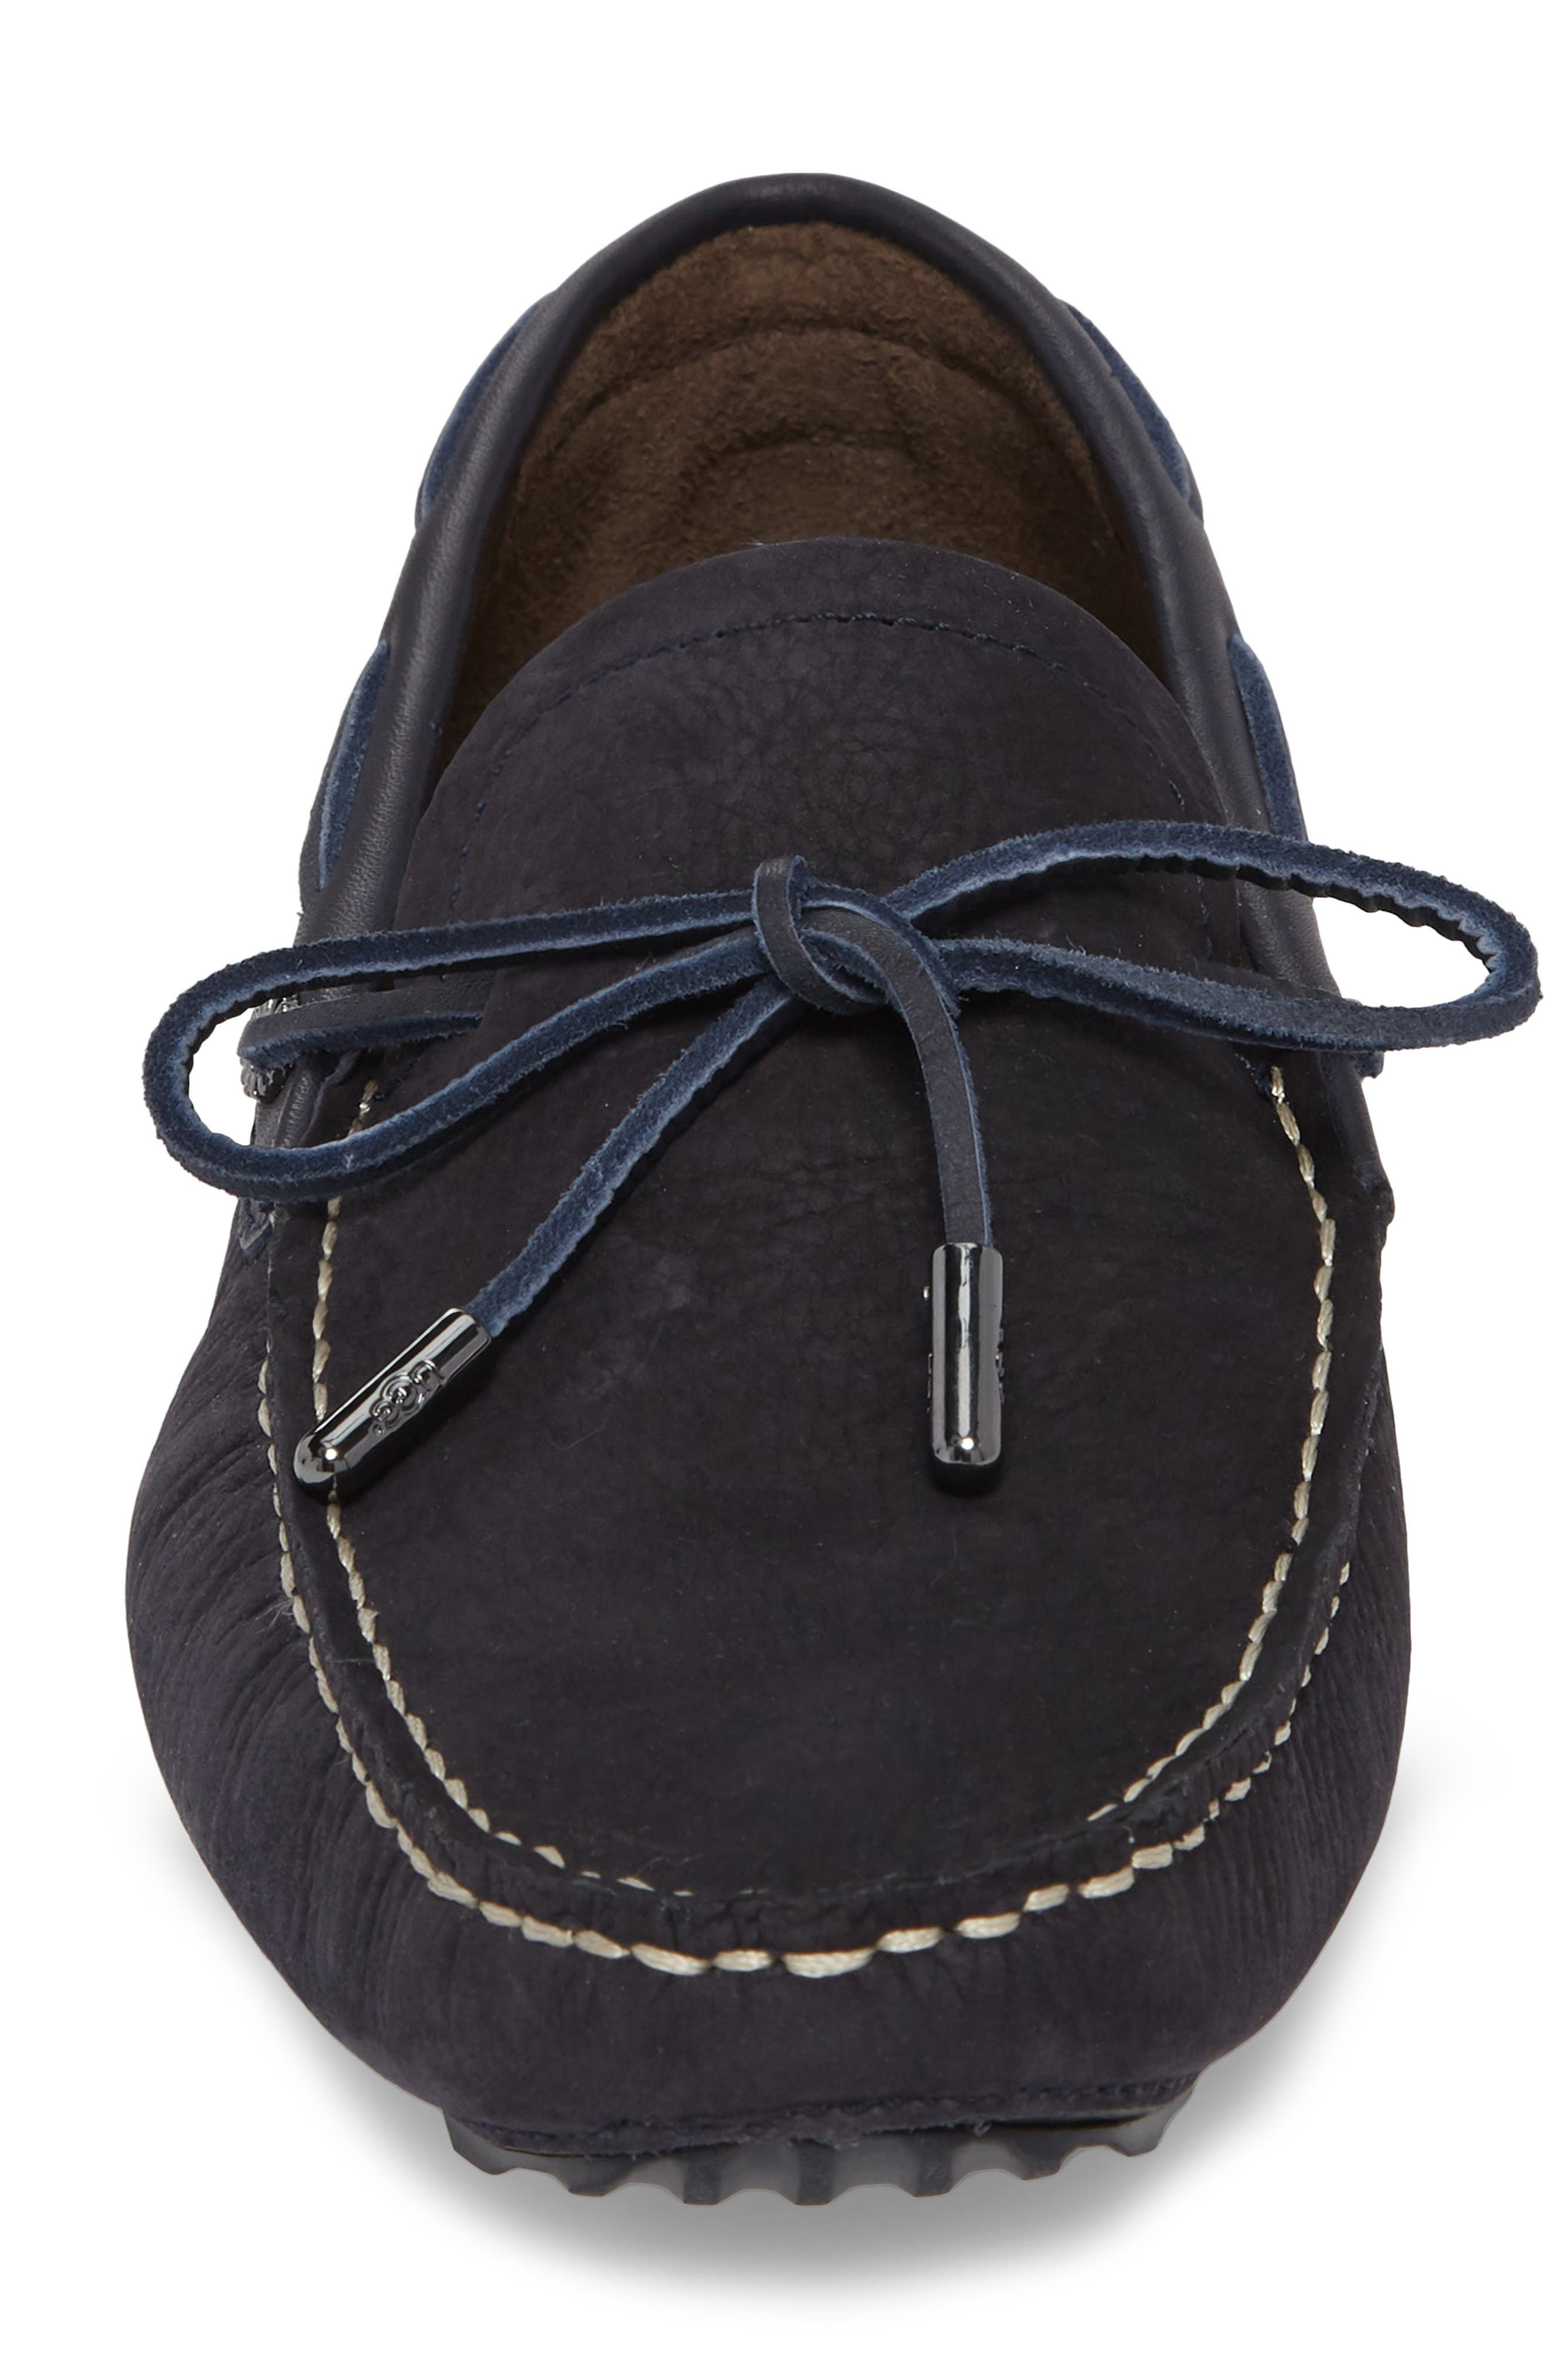 Bel Air Driving Moccasin,                             Alternate thumbnail 4, color,                             Navy Leather